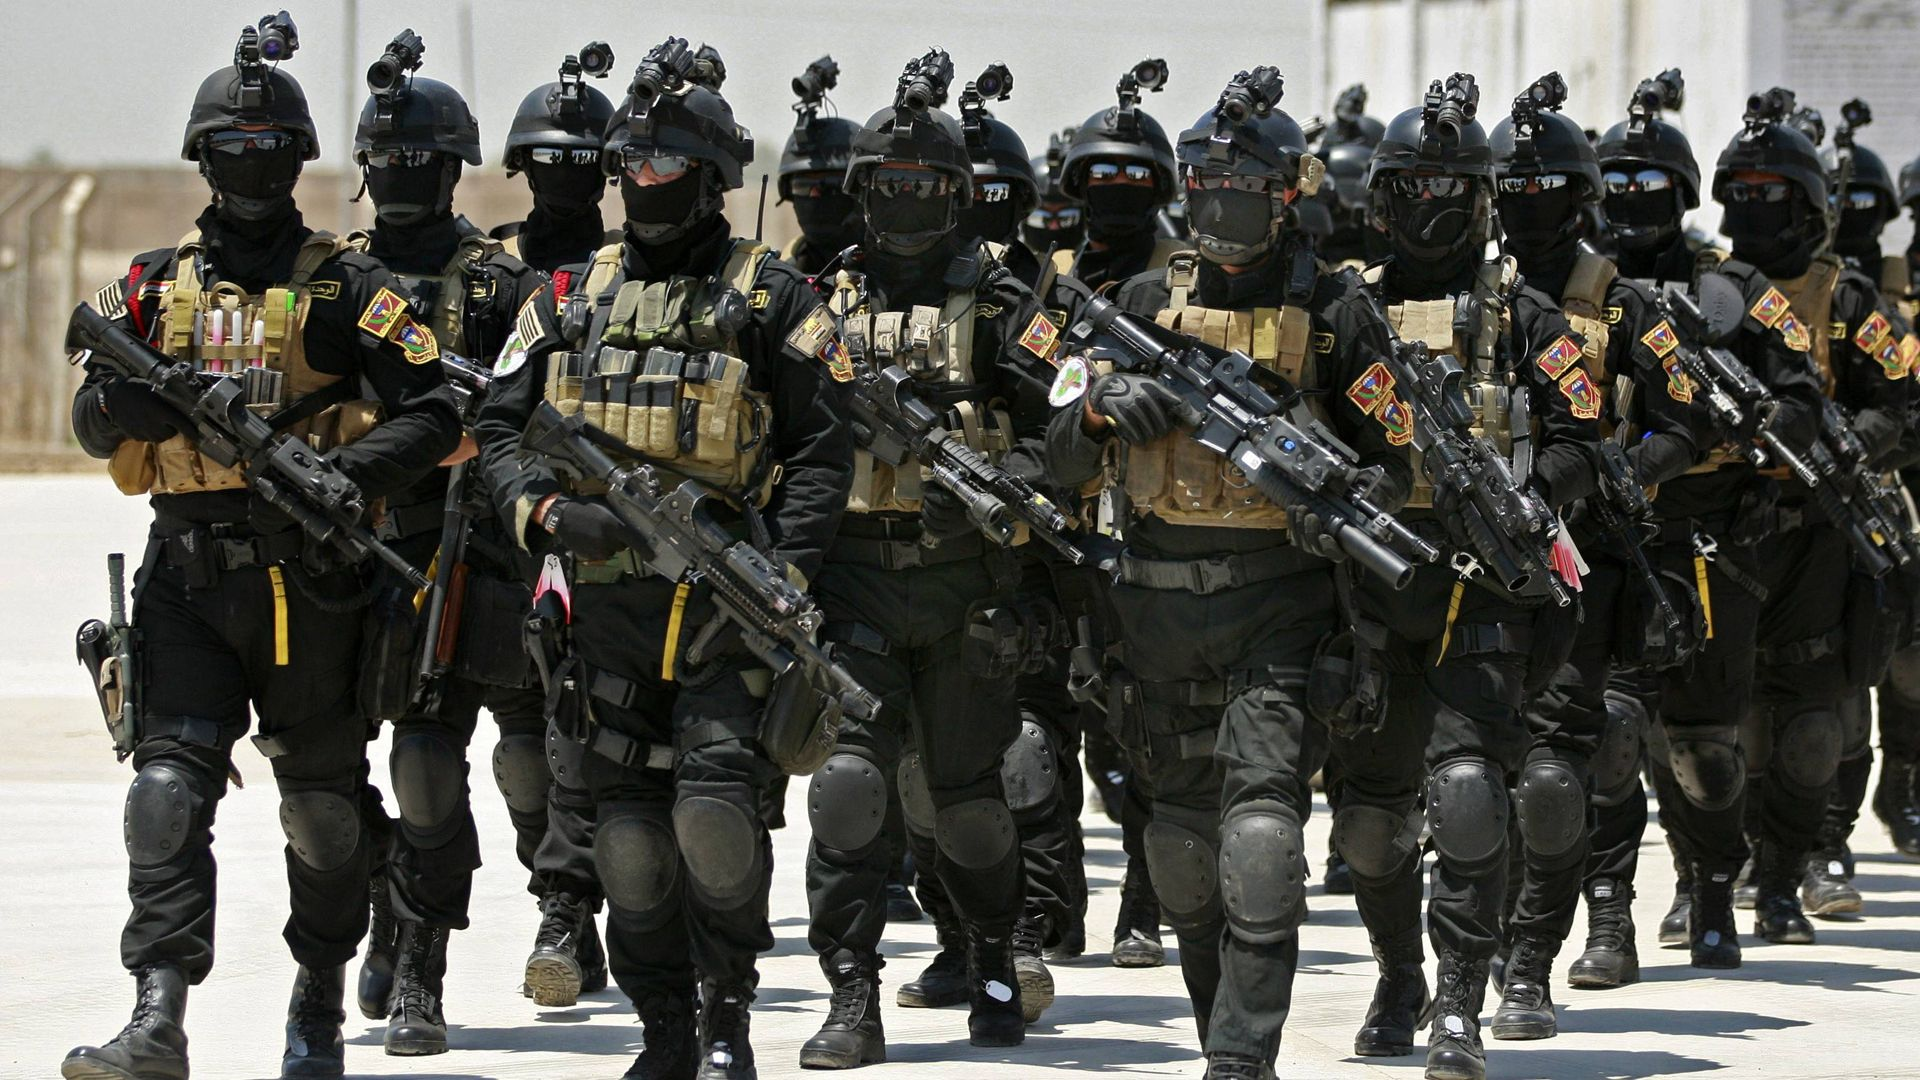 Military special forces gear - Iraqi Special Forces Military Clothingmilitary